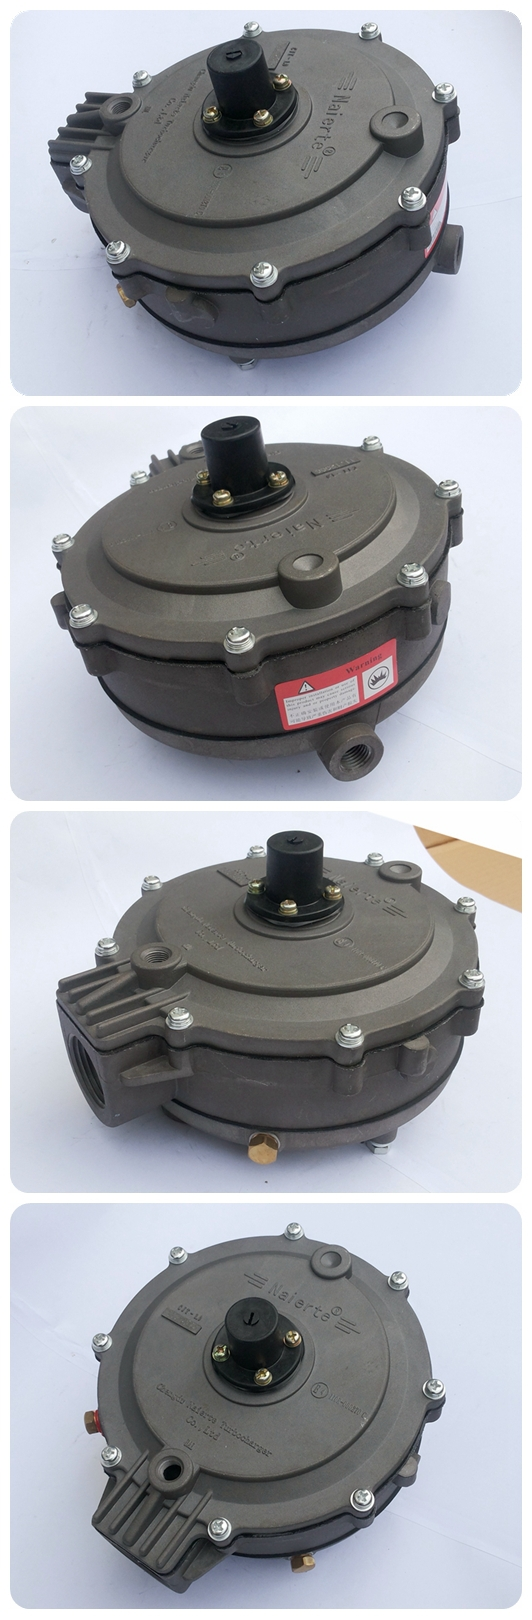 Diesel and CNG dual fuel system low pressre reducer for bus truck